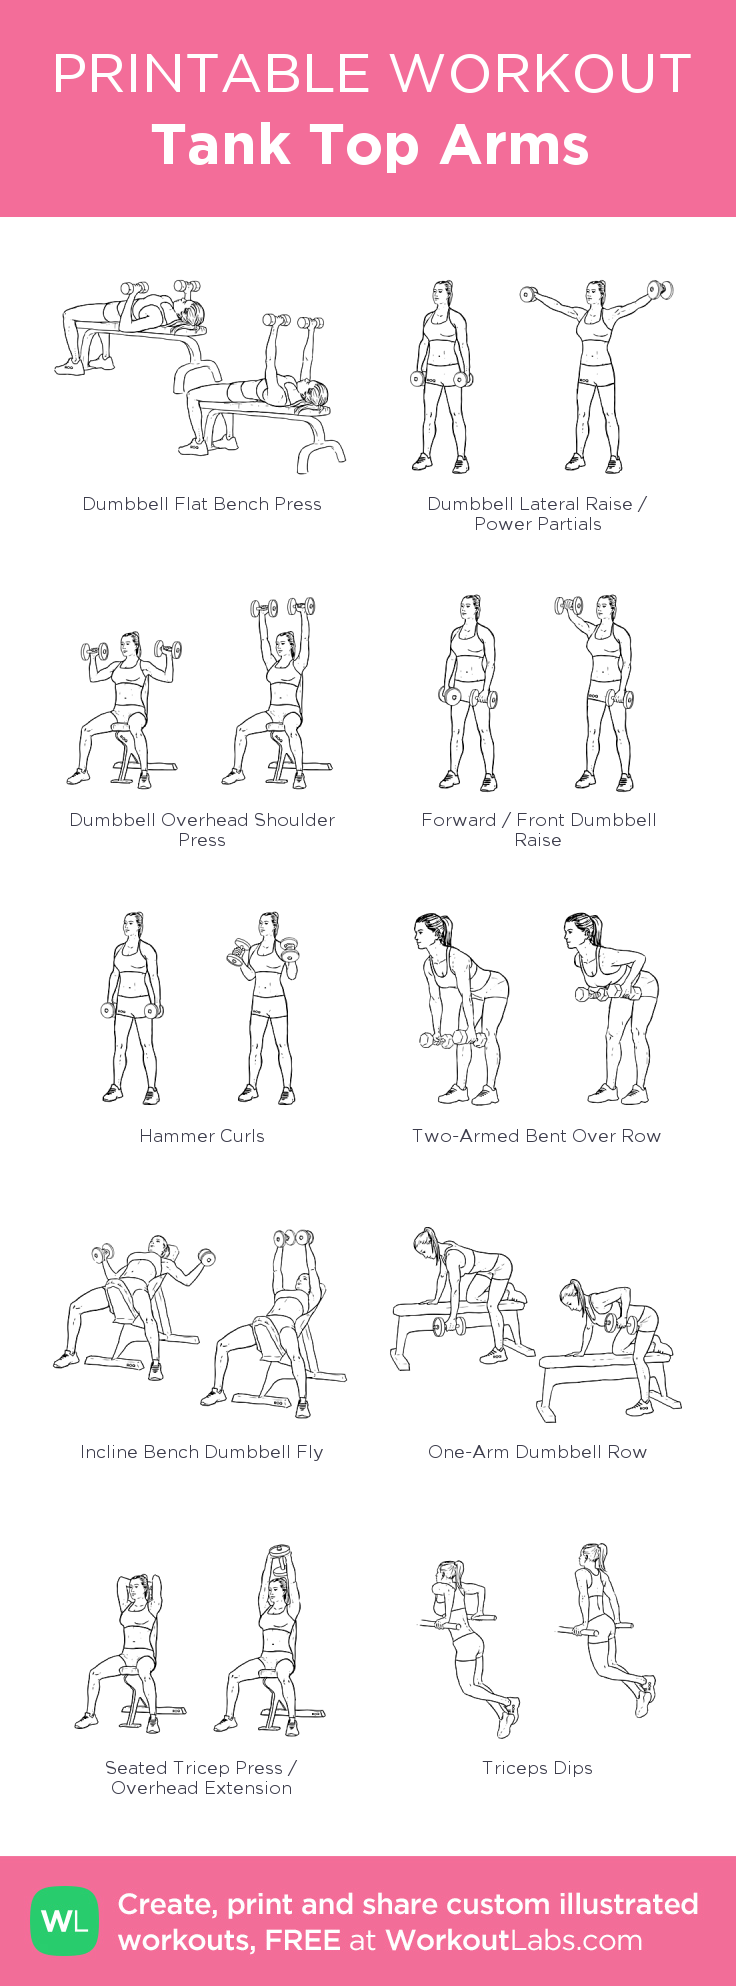 Tank Top Arms : my visual workout created at WorkoutLabs.com ...